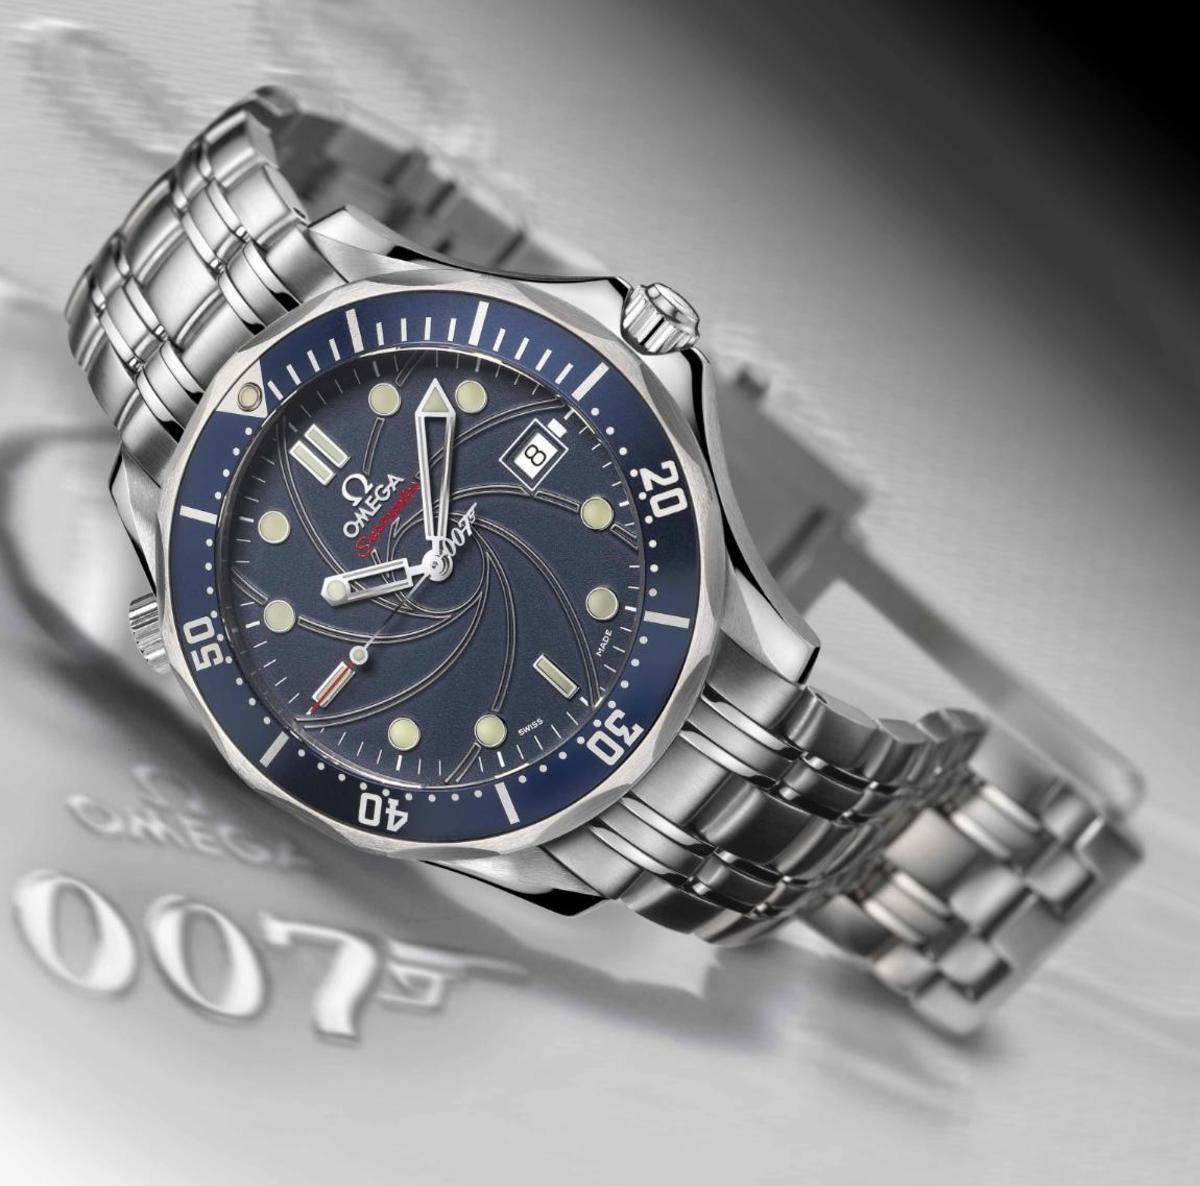 The Omega Seamaster 300 Ultimate Guide